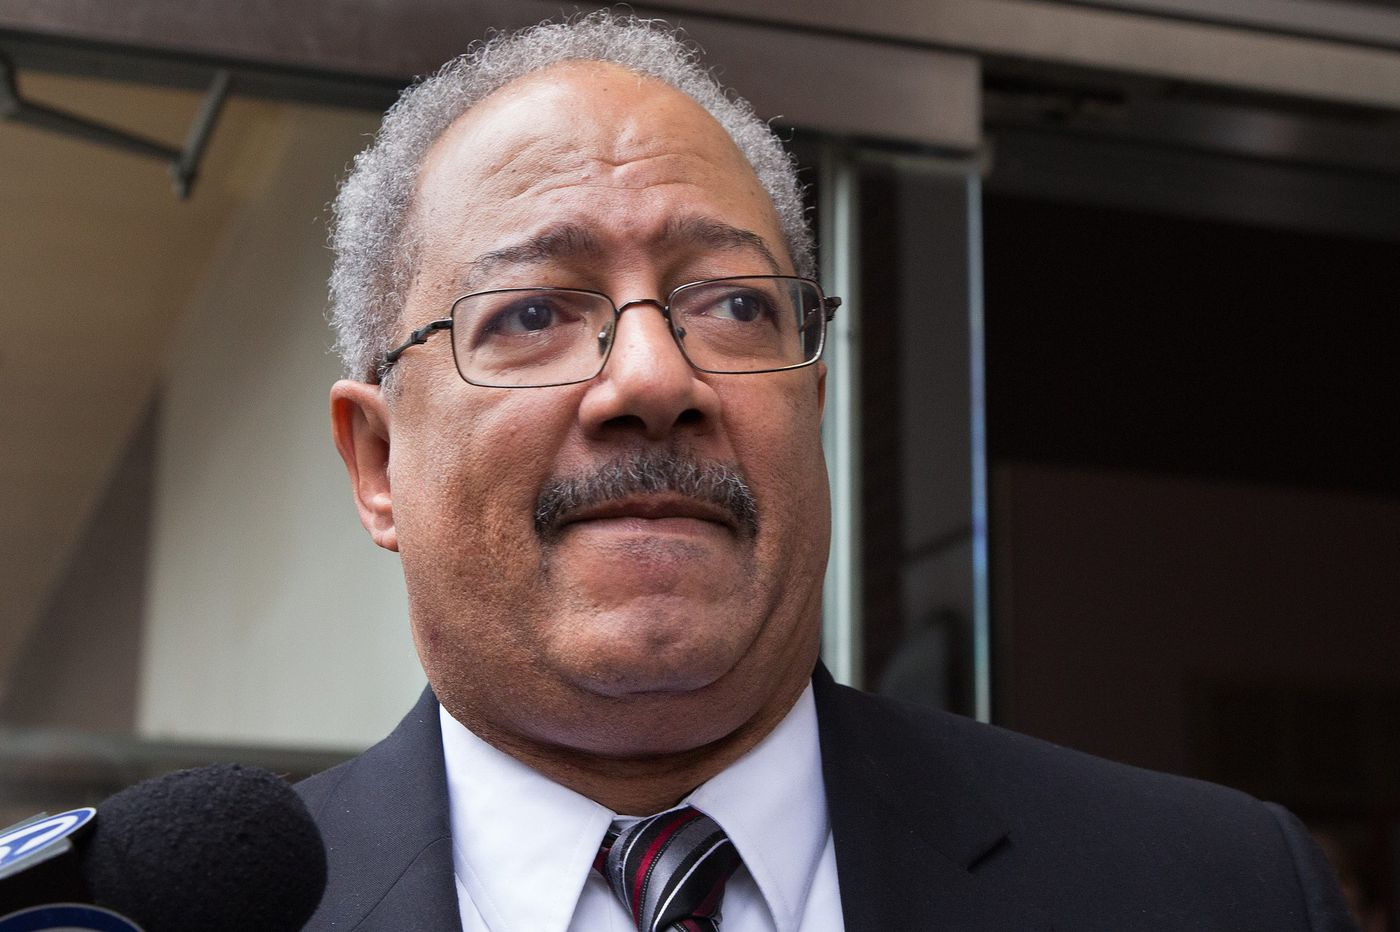 Appeals court overturns U.S. Rep. Chaka Fattah's bribery convictions, upholds guilty verdict on other counts